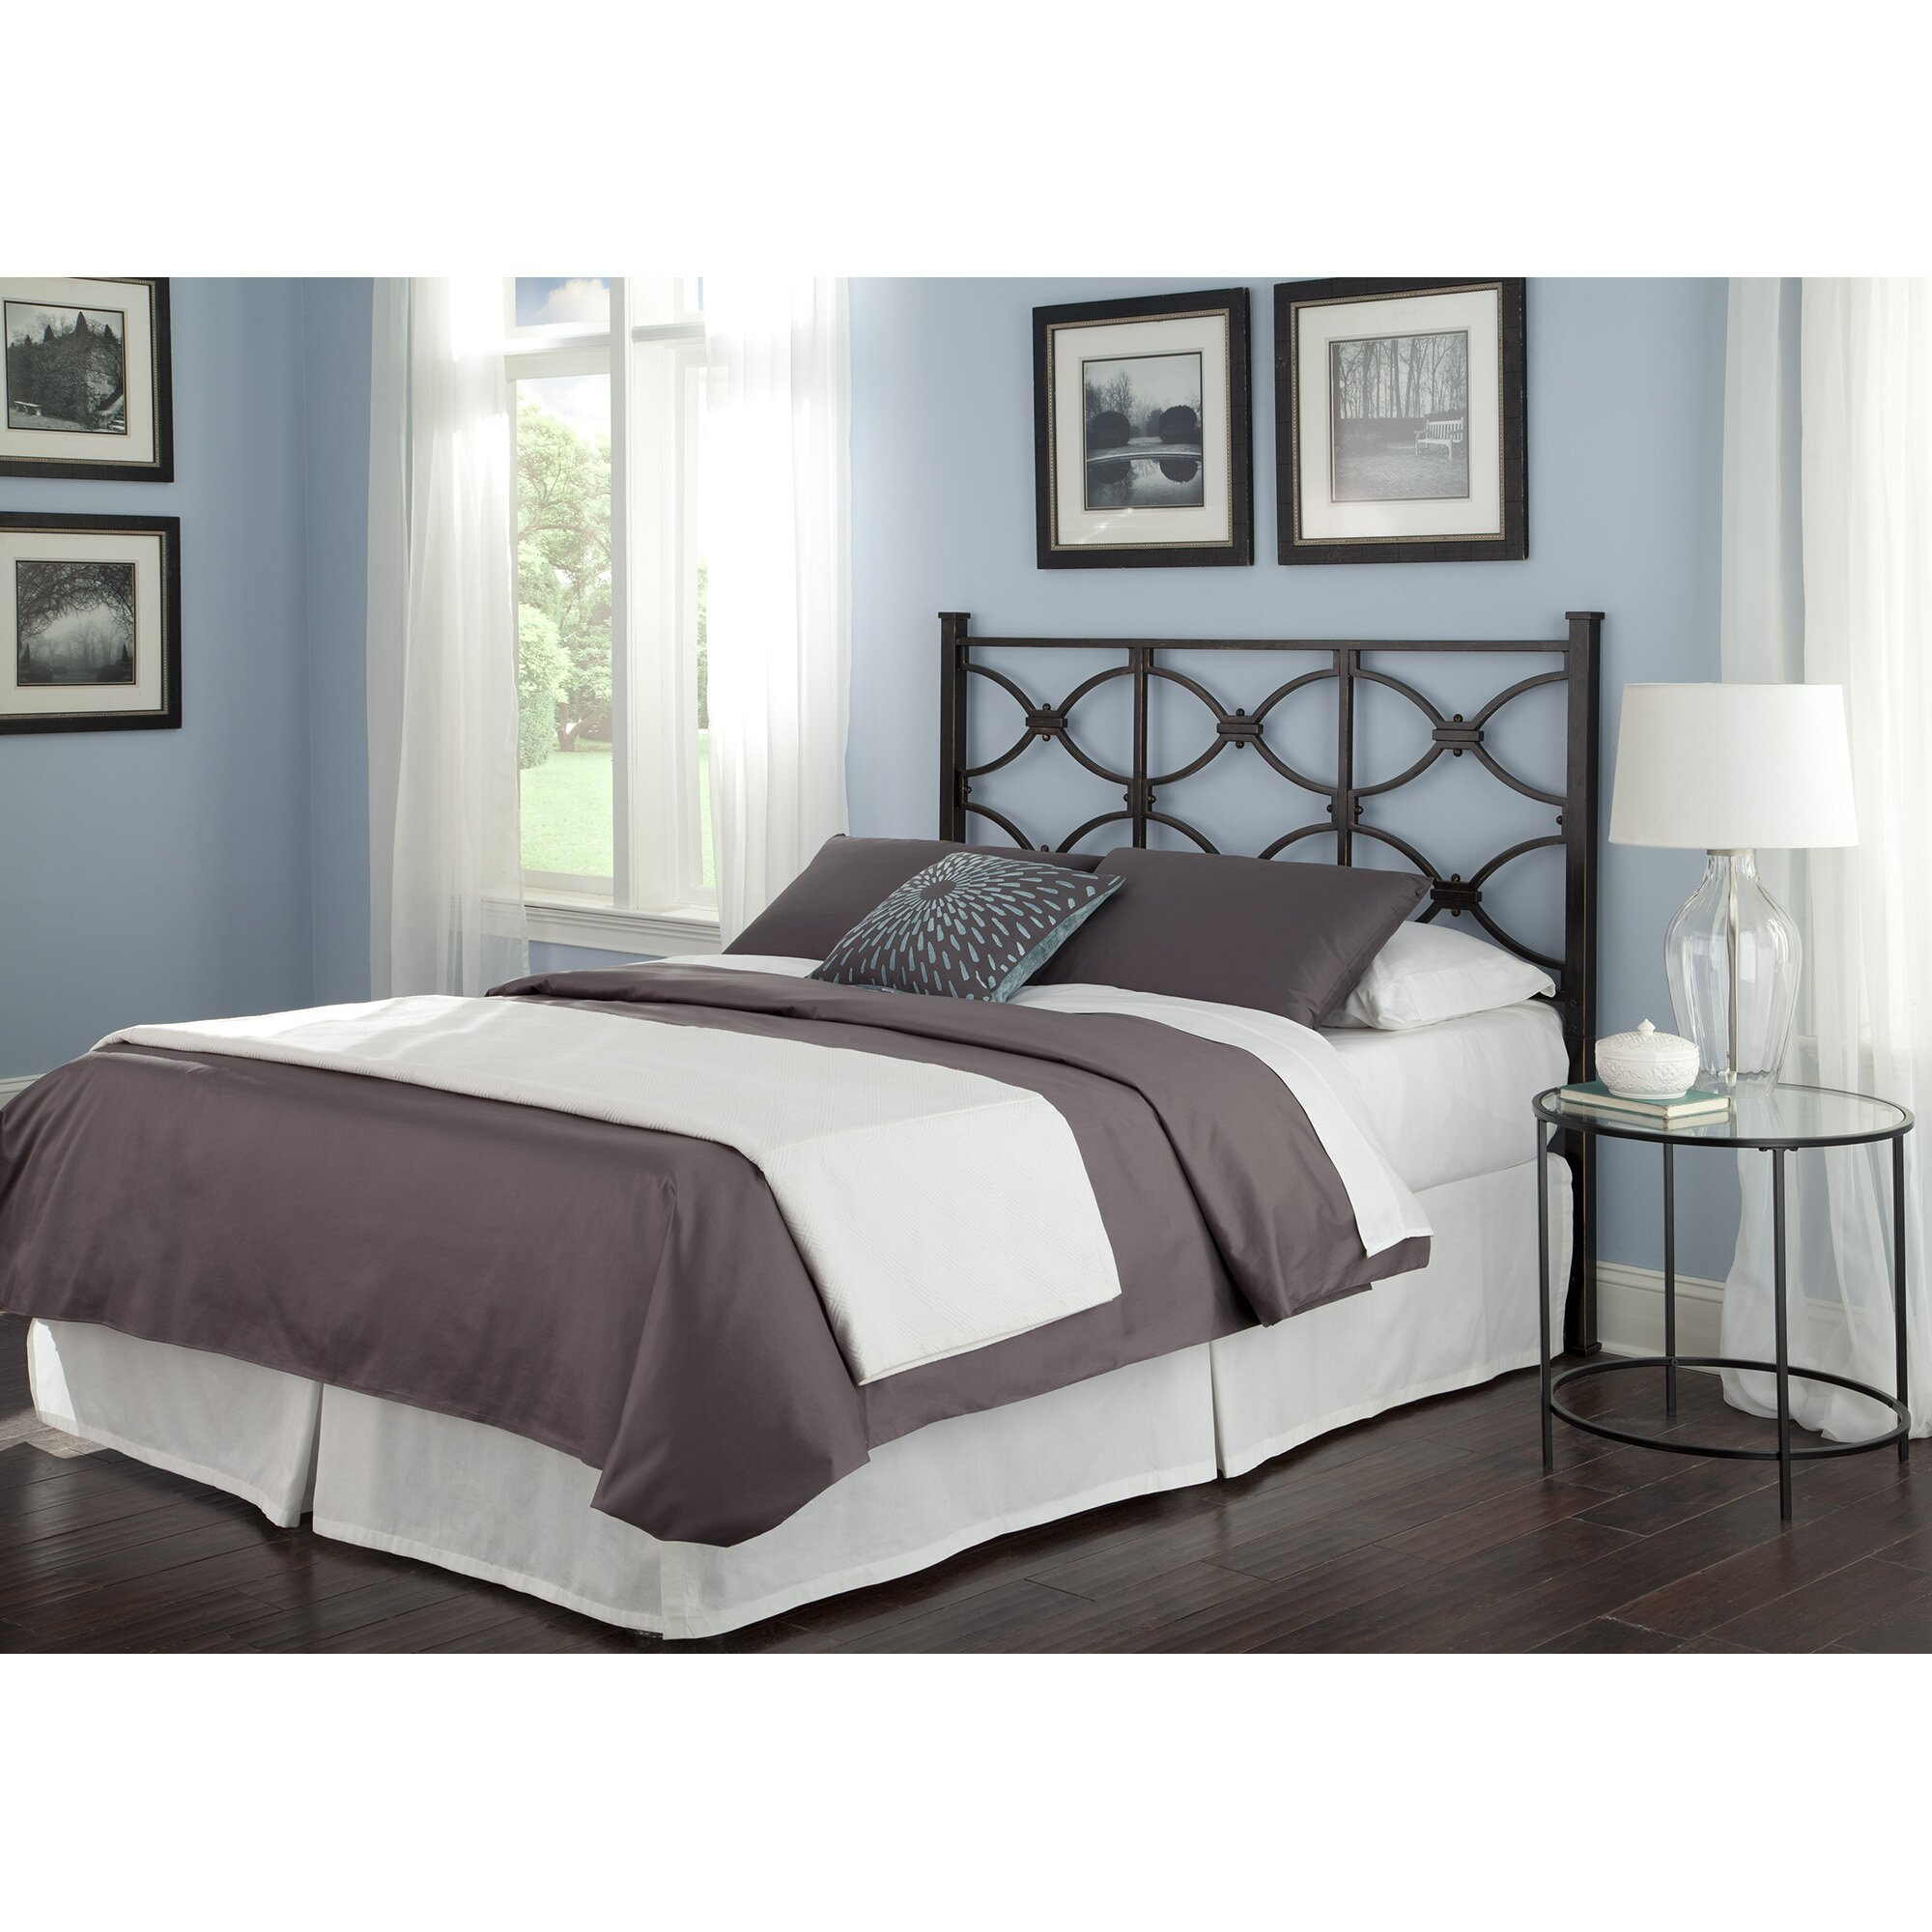 Fashion bed group marlo california king steel headboard for California king headboard